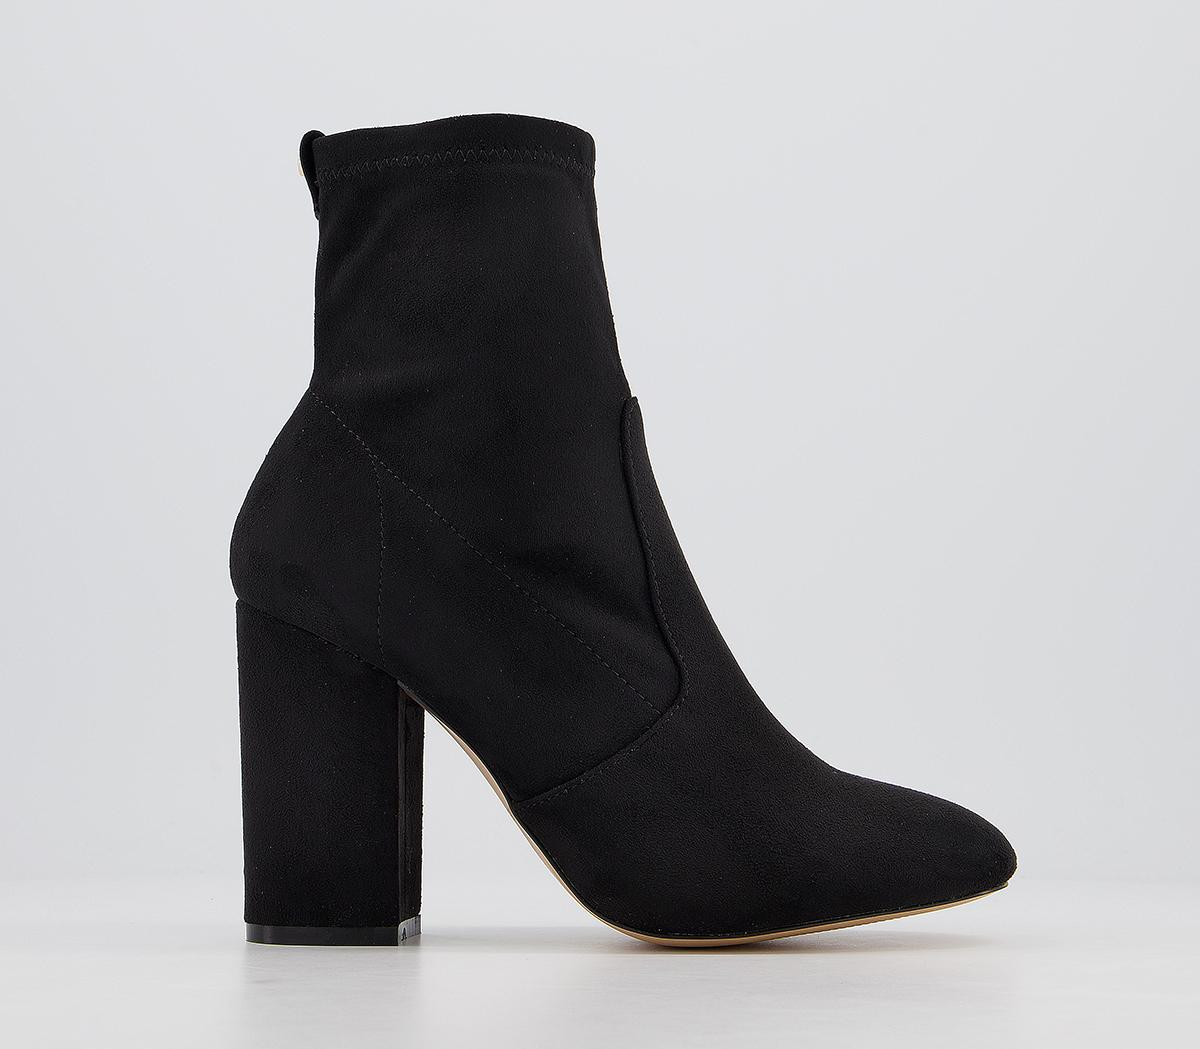 Aisling Stretch Block Heel Ankle Boots